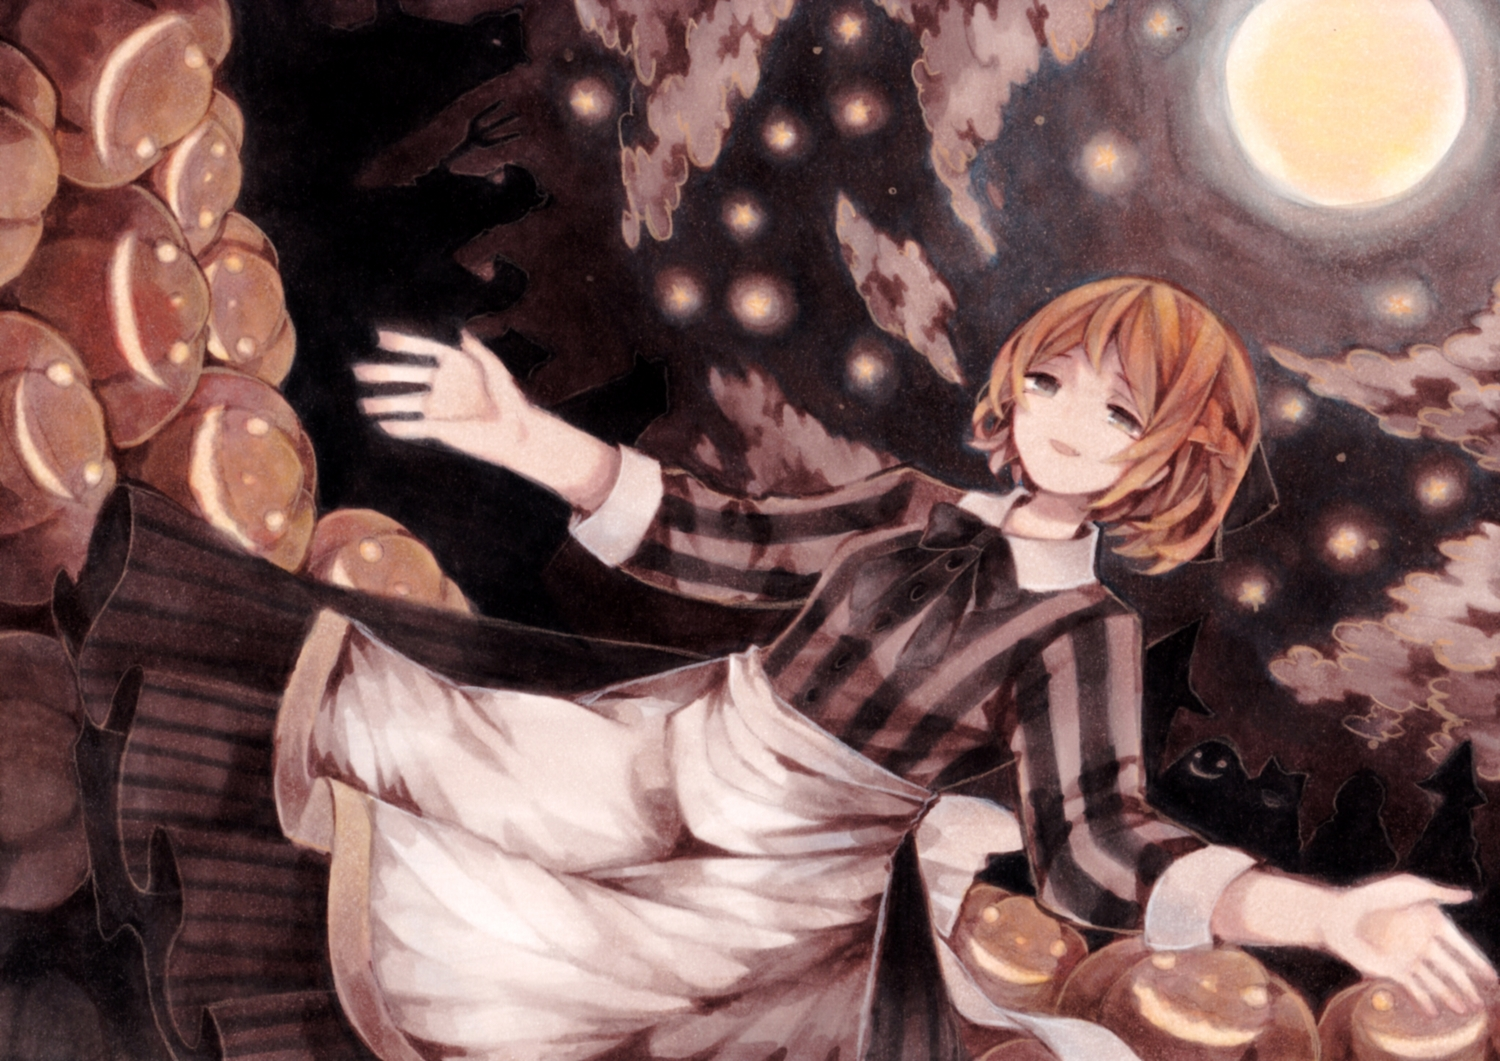 apron blonde_hair bow clouds dress halloween katherine_livermore moon night pumpkin short_hair sound_horizon stars wiriam07